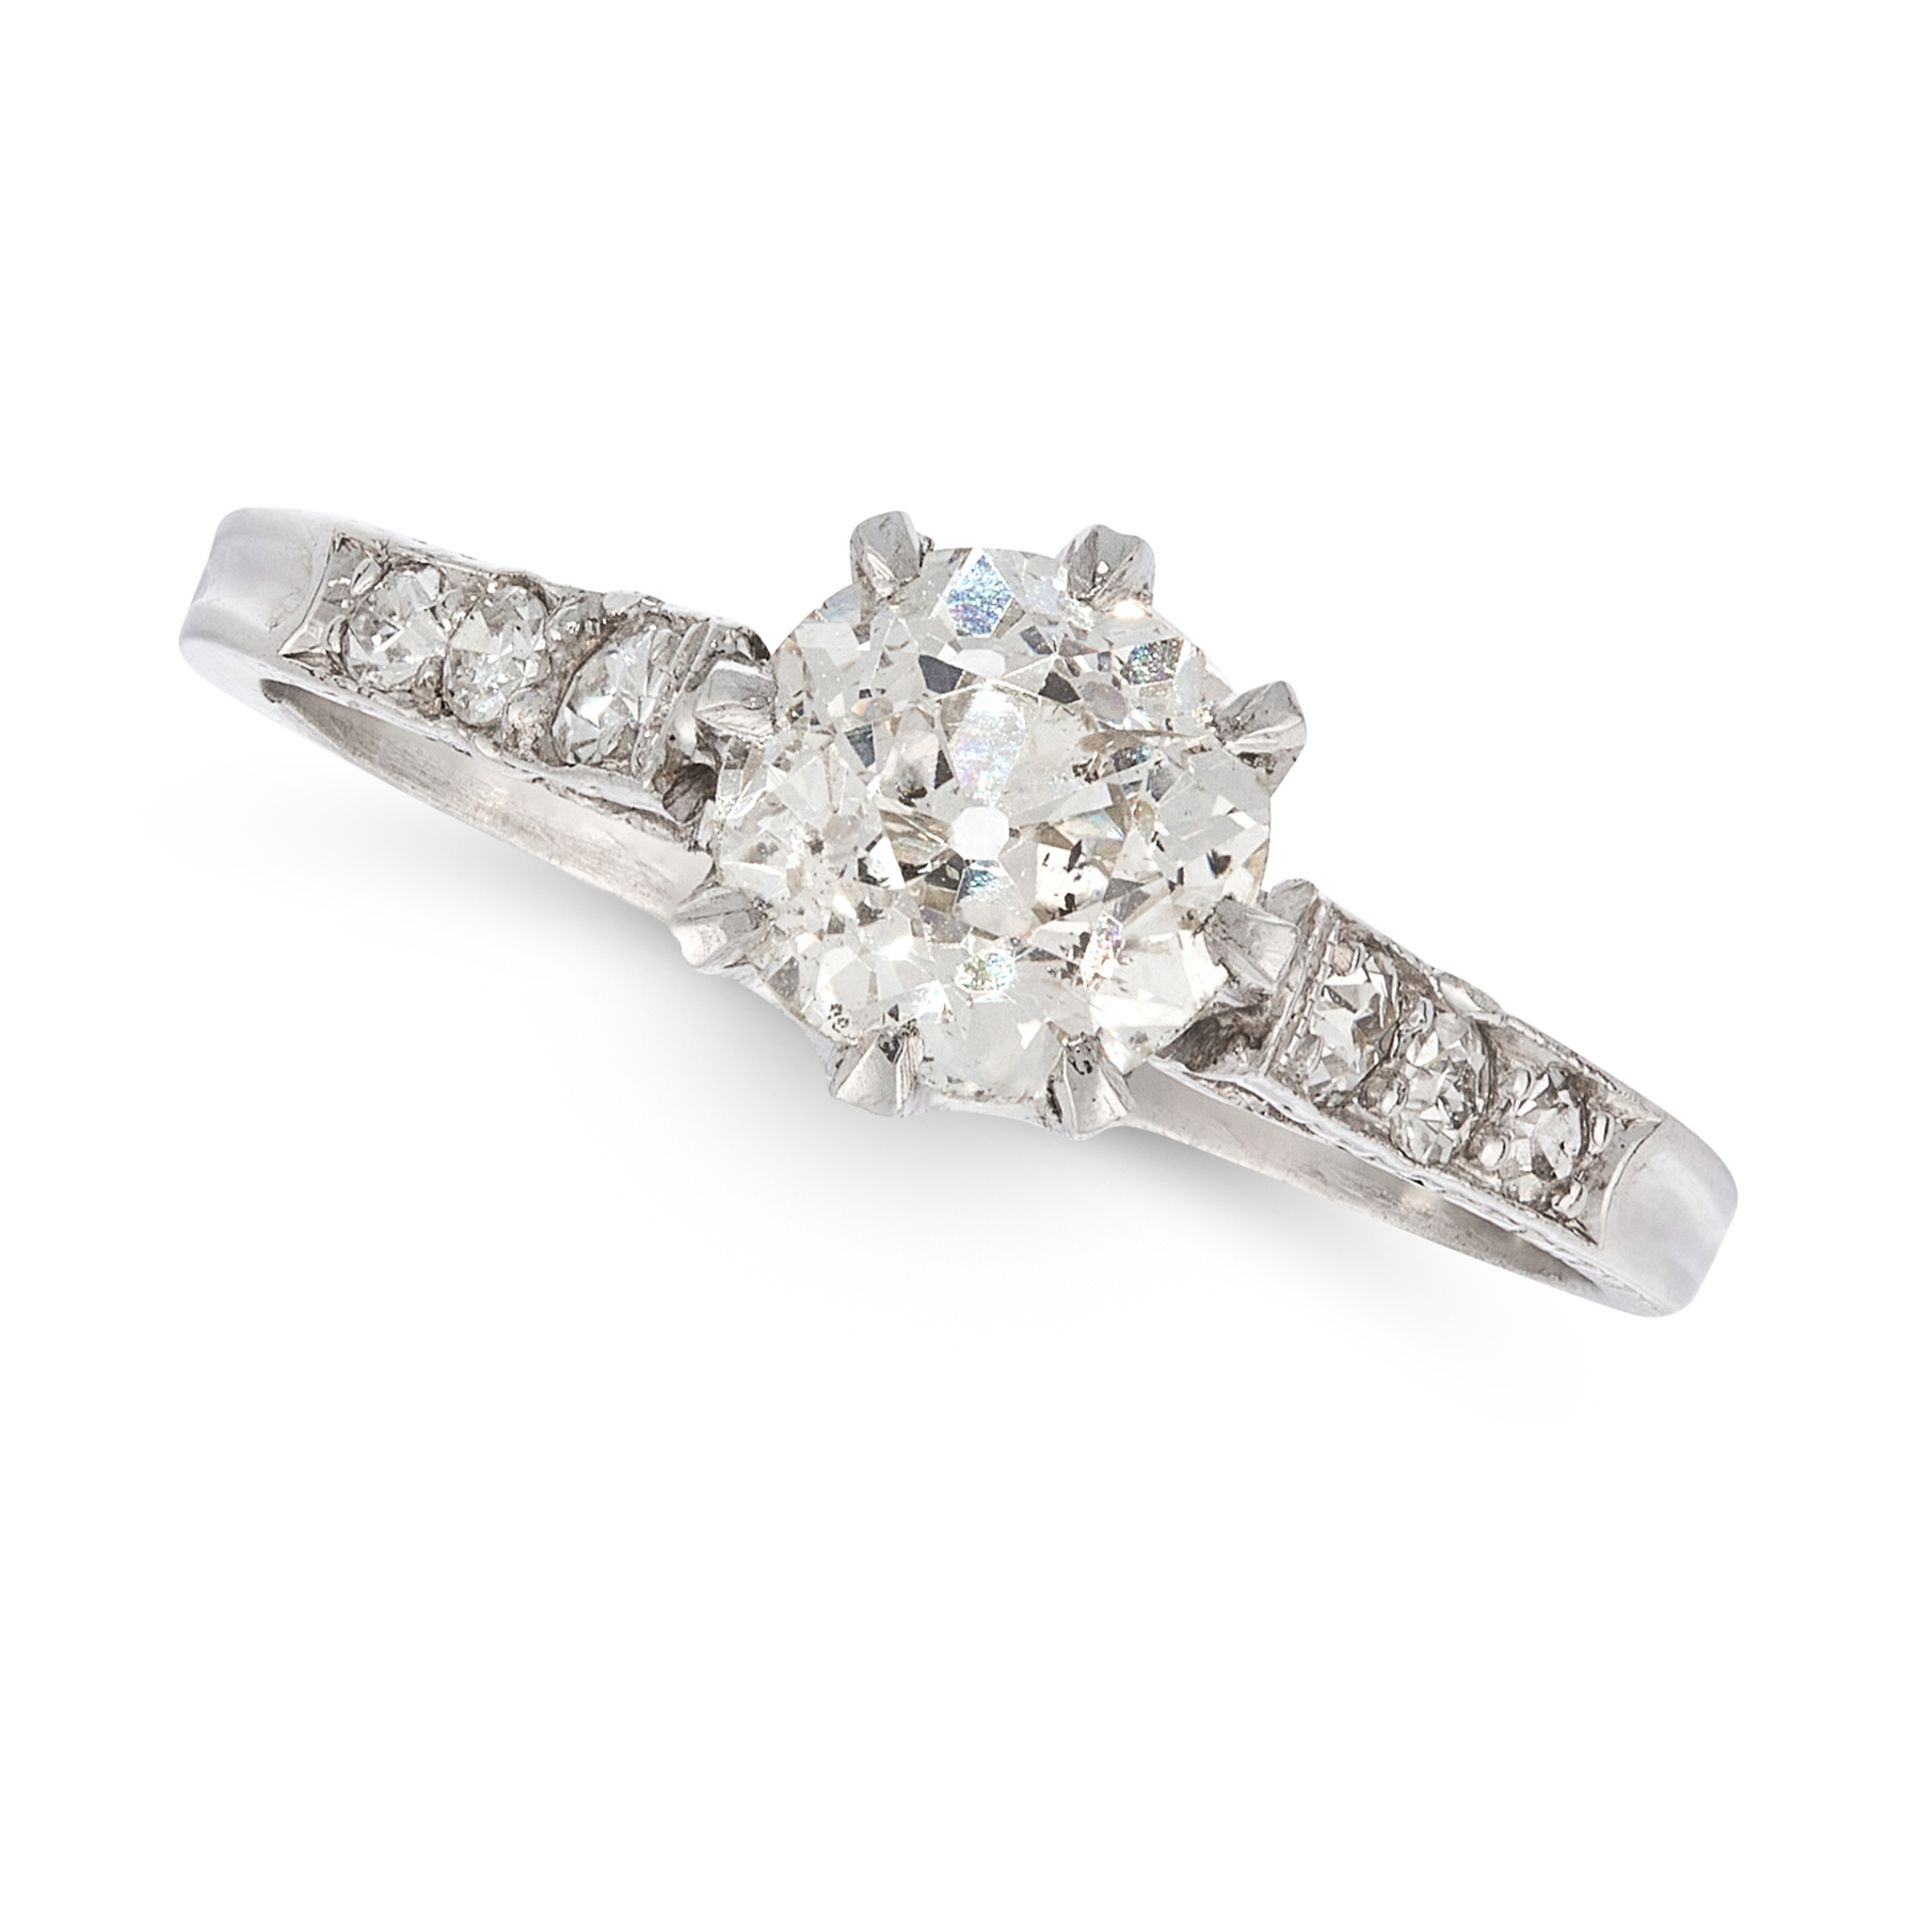 A DIAMOND SOLITAIRE RING in platinum, set with a central old cut diamond of 1.08 carats, accented by